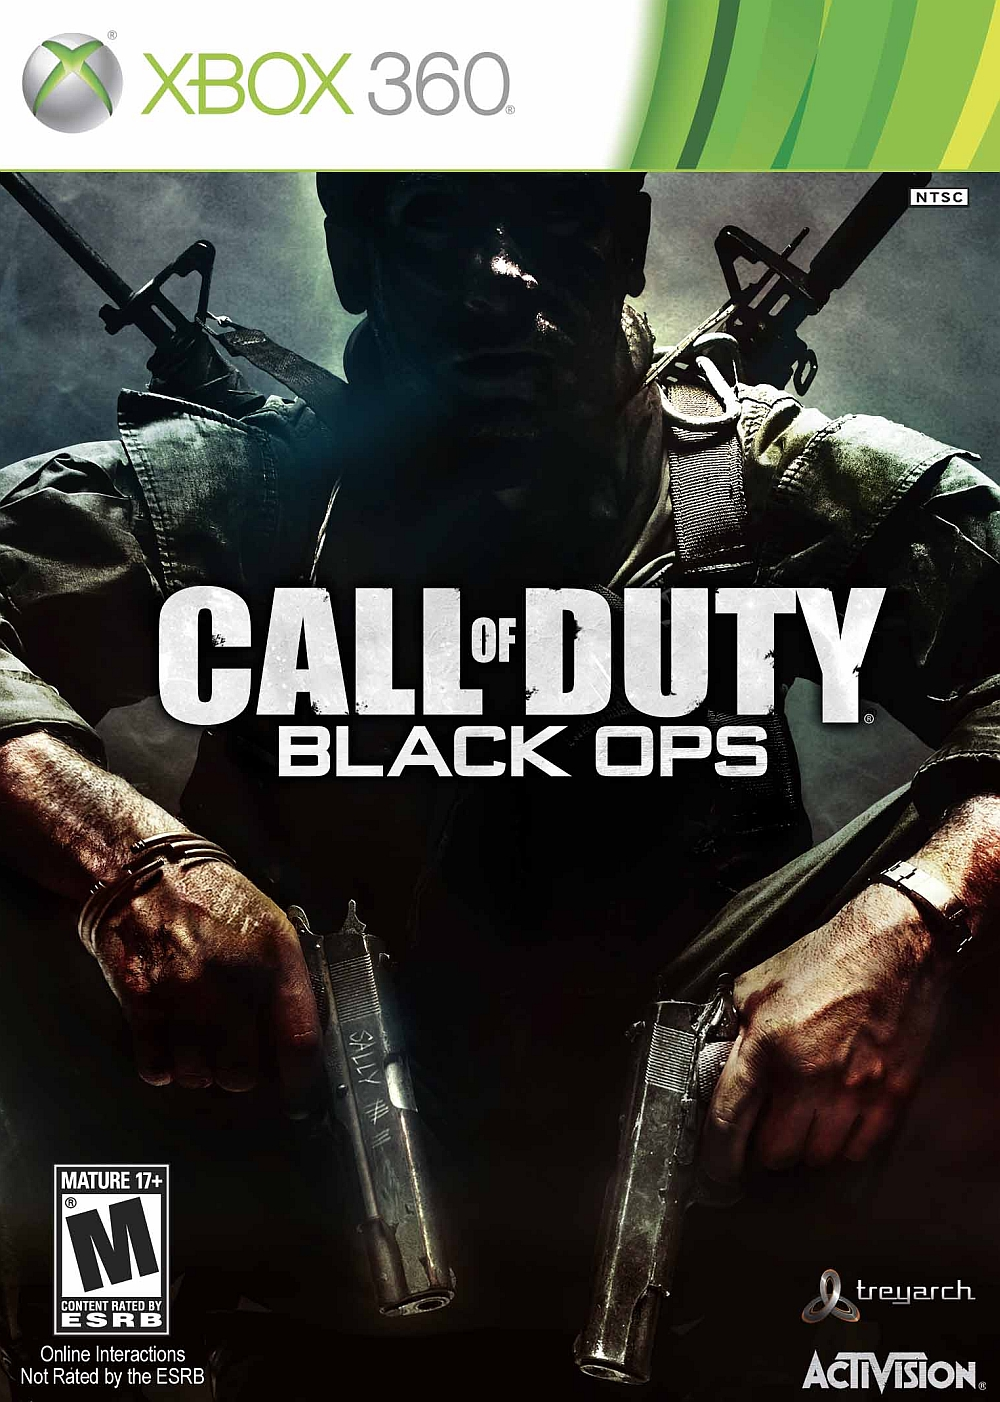 Call of duty: black ops collection 1-3 for xbox 360 | gamestop.